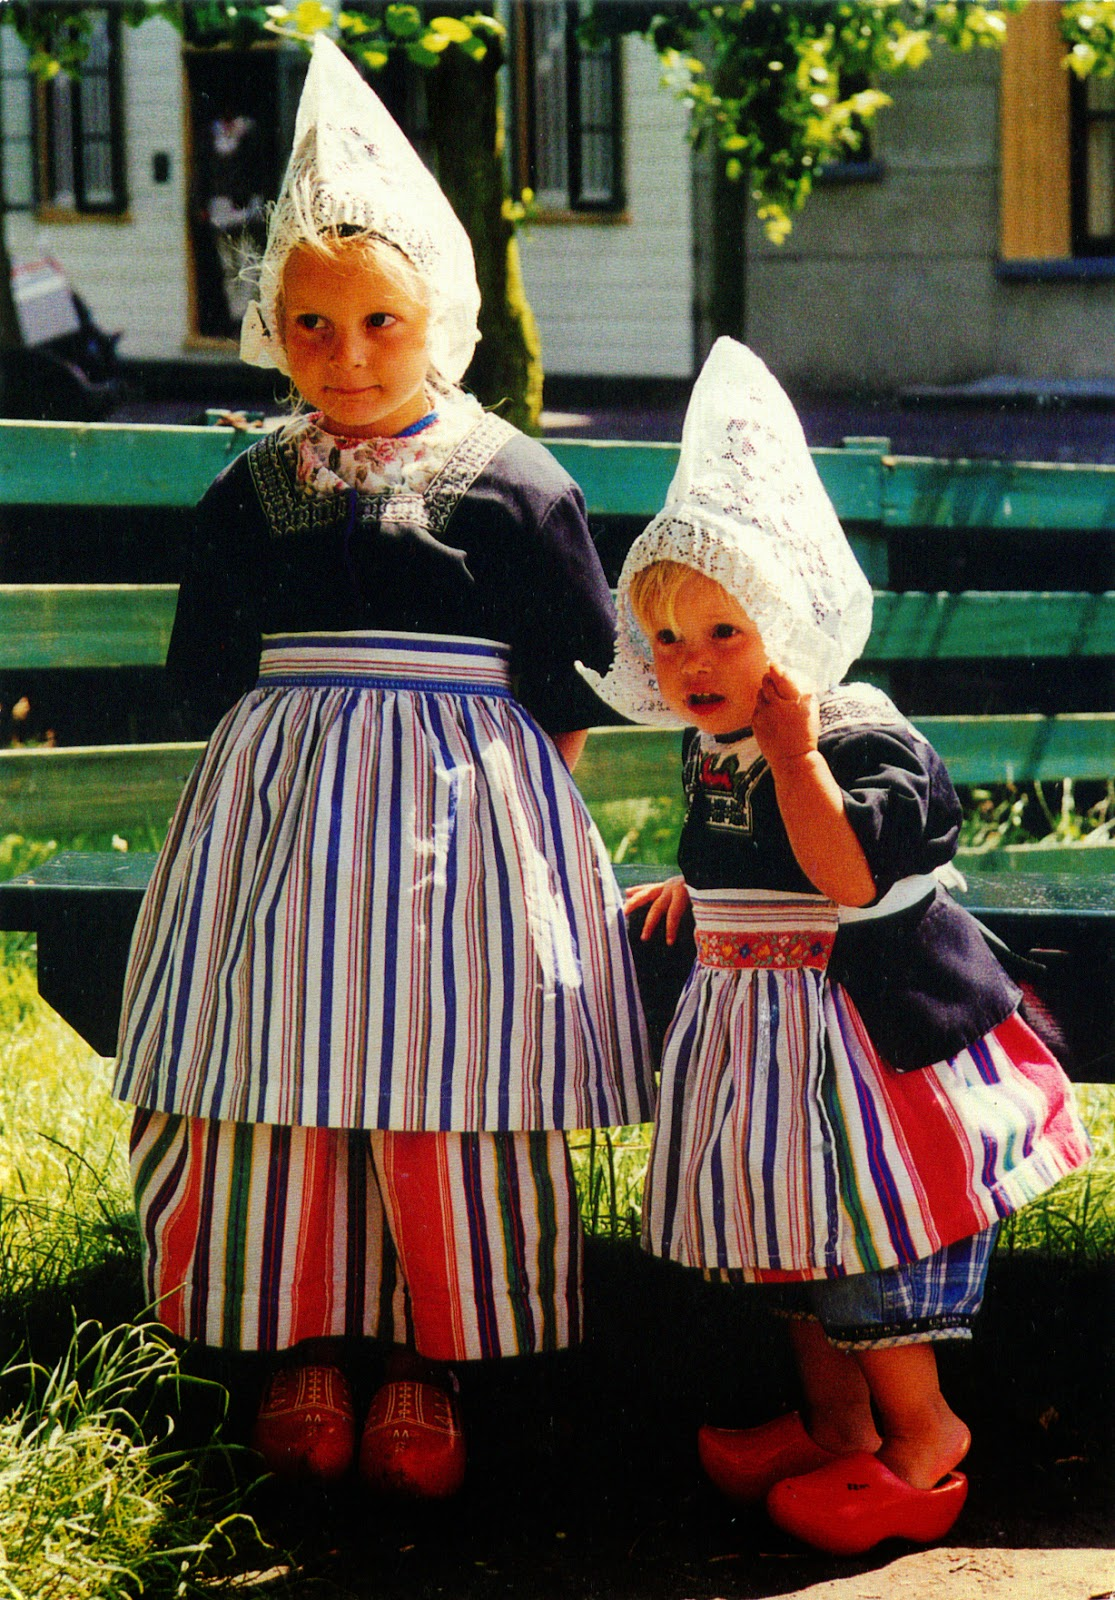 Traditional Netherlands costumes worn by women include ankle-length dresses with long sleeves, aprons and a small fitted cloth hat. Men wear a traditional costume with a long sleeve button up shirt; loose, pleated front pants; neck scarf and hat.